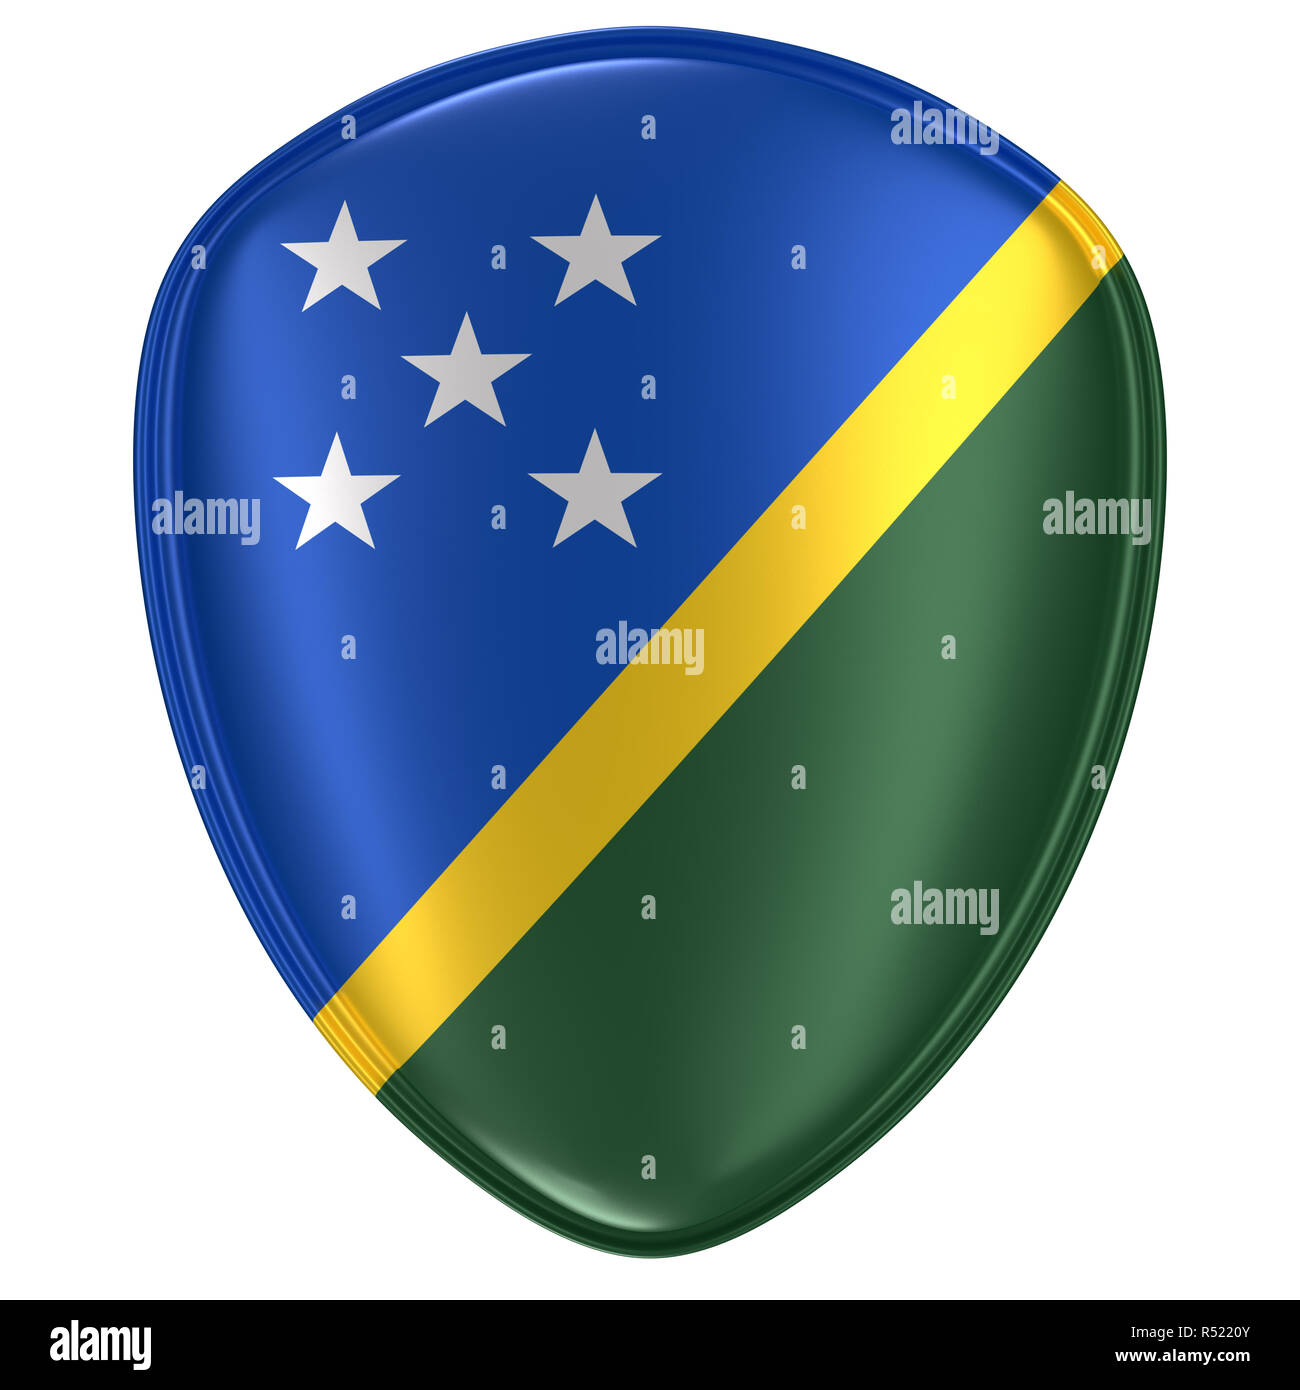 3d rendering of a Solomon Islands flag icon on white background. - Stock Image